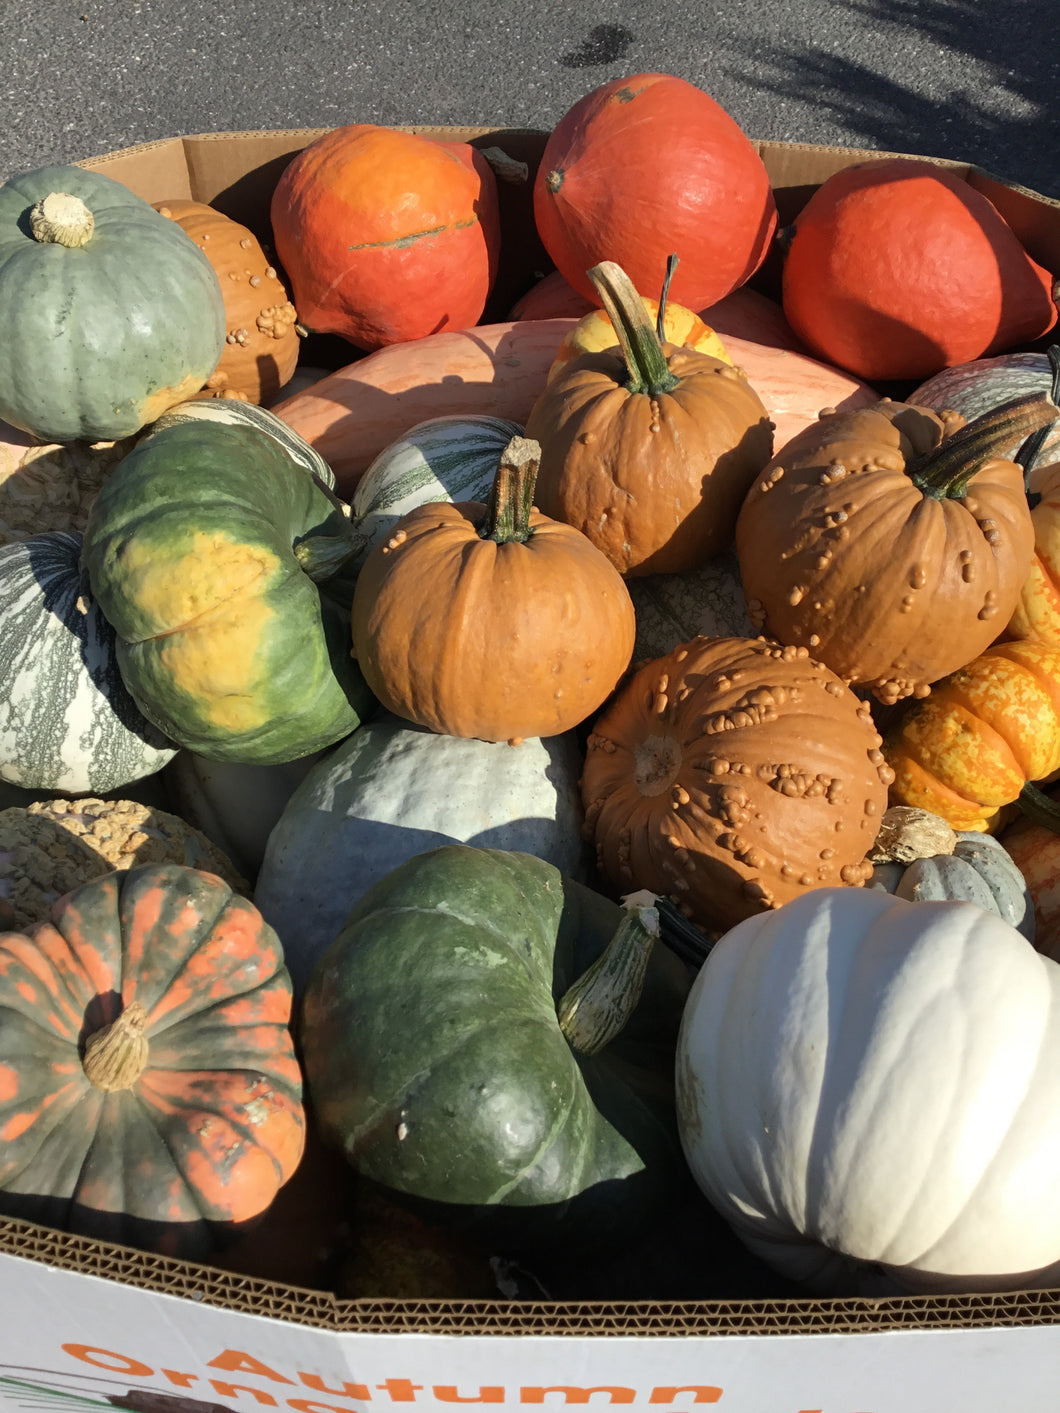 Medium and Large Gourds - $.79 per pound